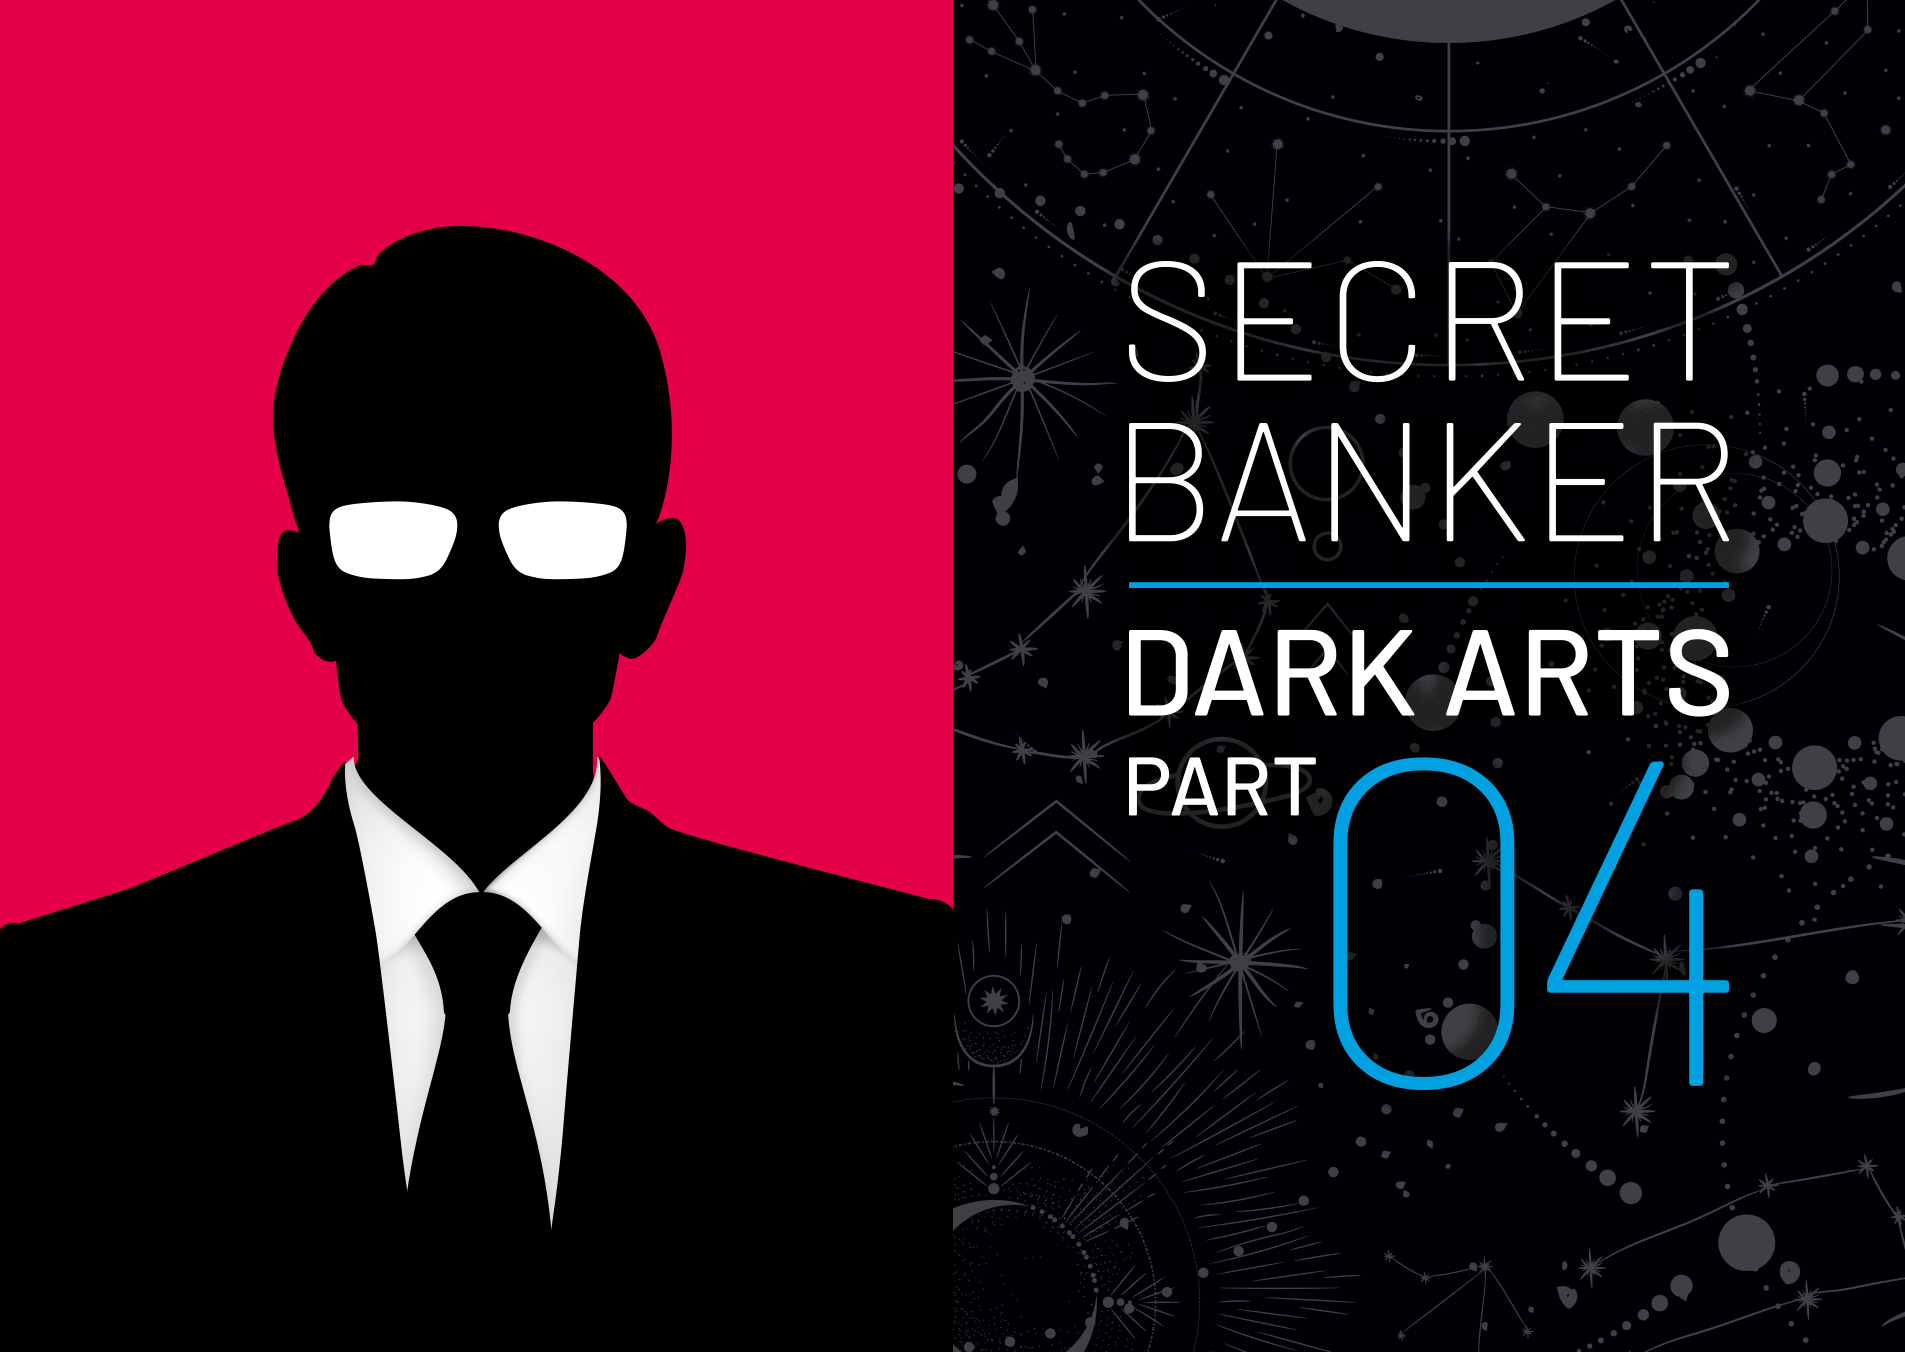 Secret Banker: 'The Dark Arts of a Deal' S1, E4